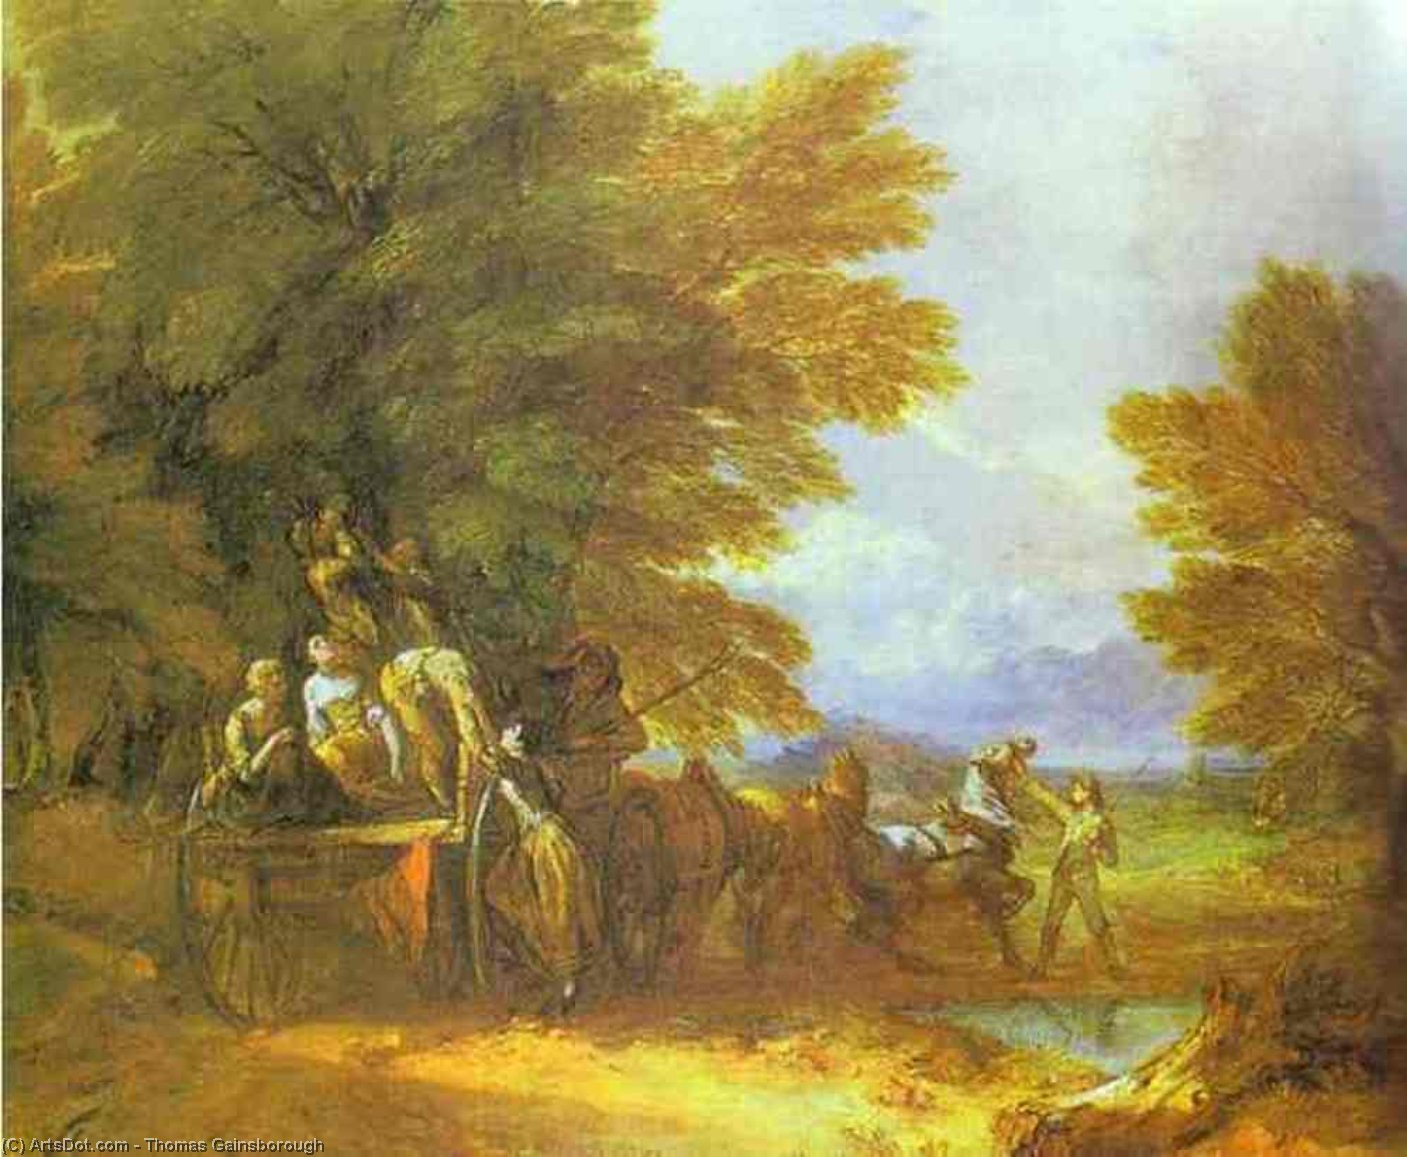 Wikioo.org - The Encyclopedia of Fine Arts - Painting, Artwork by Thomas Gainsborough - The Harvest Wagon